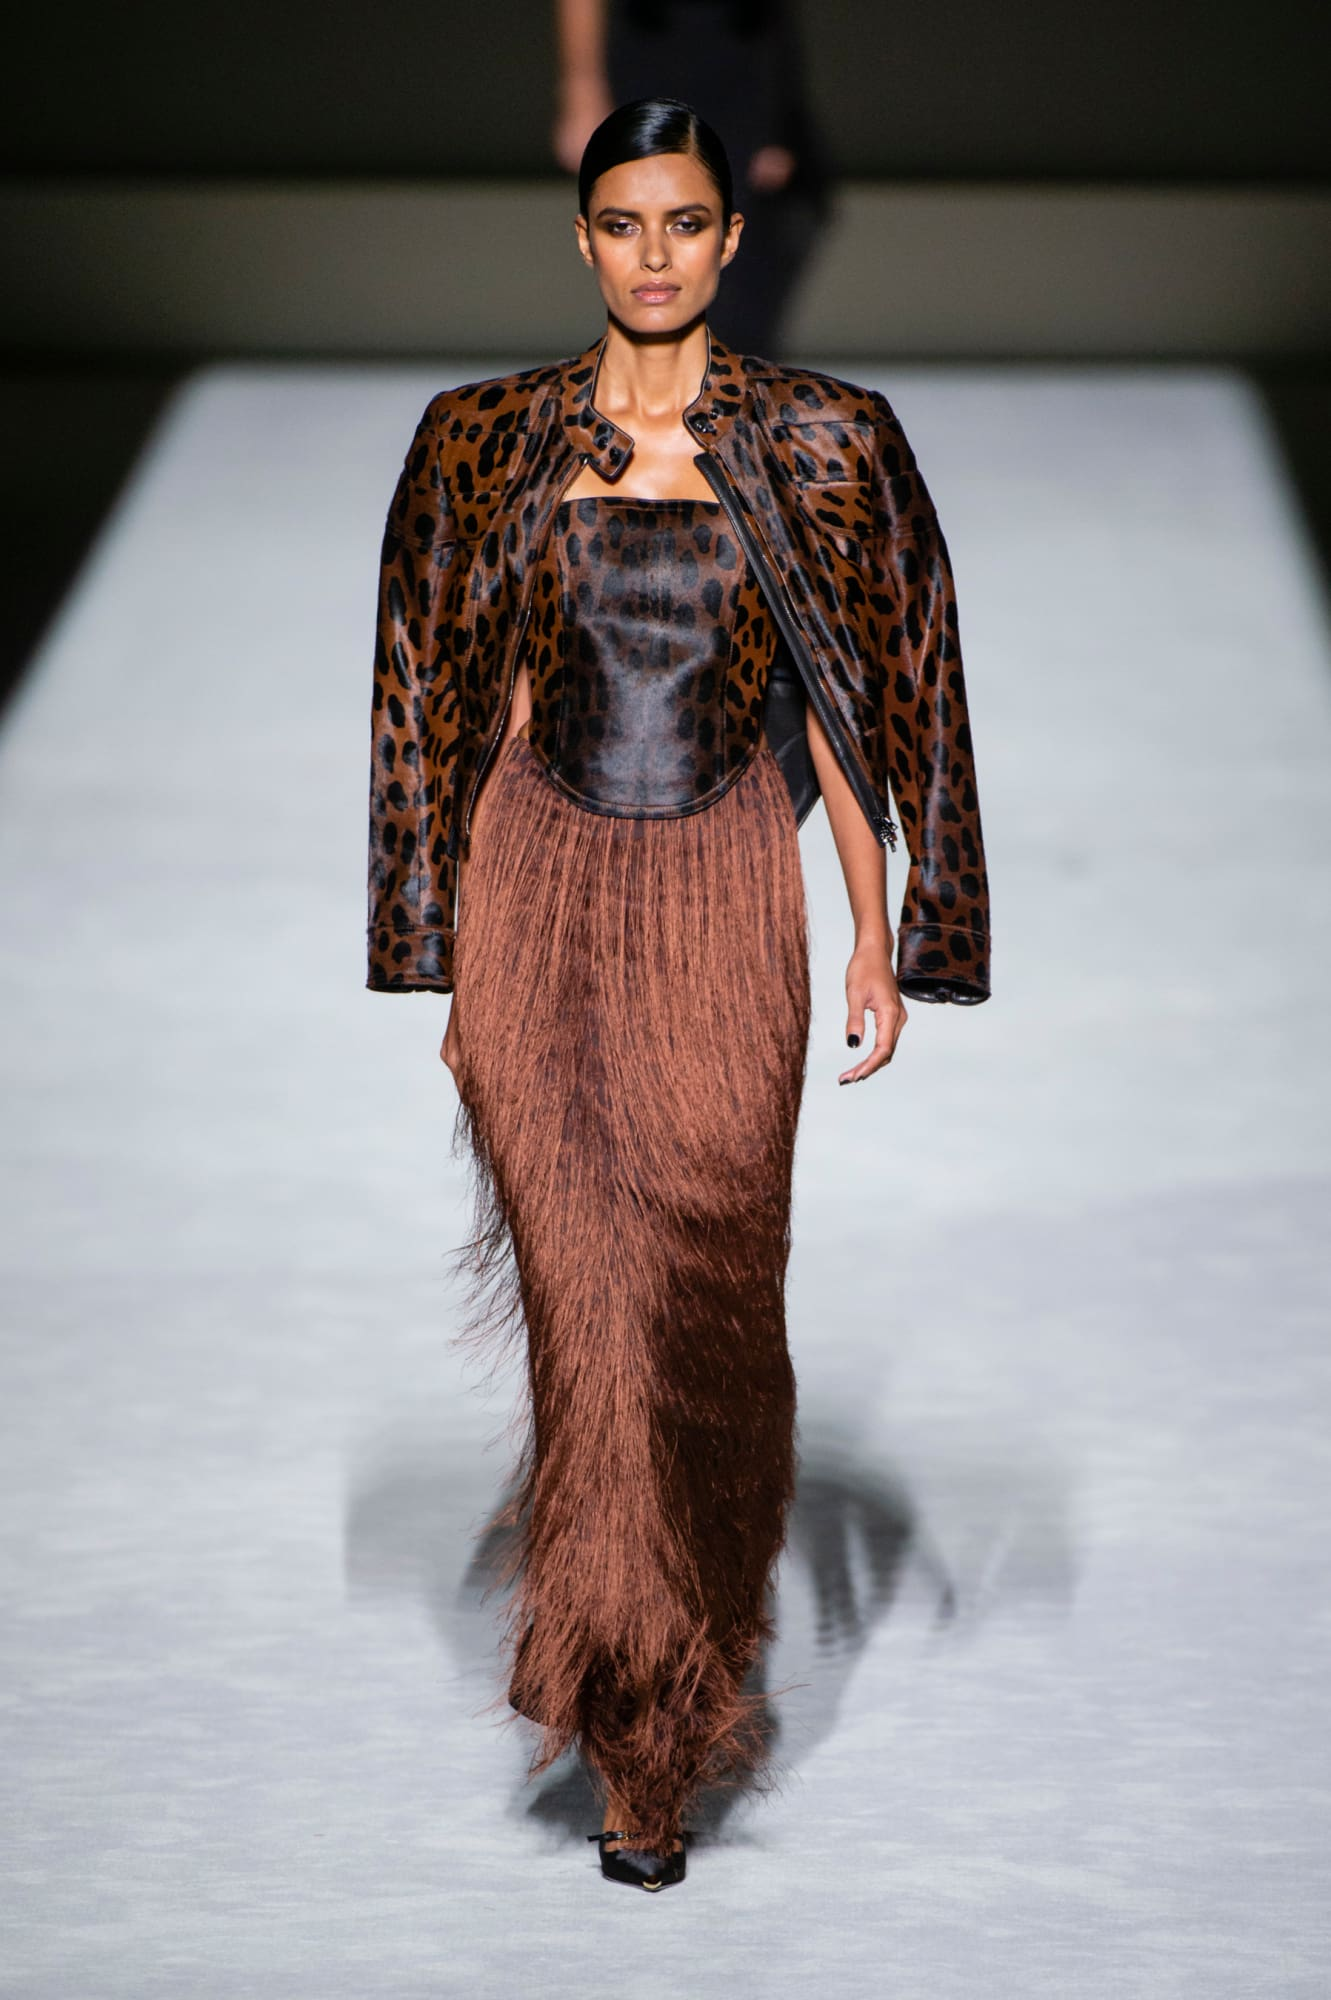 Tom Ford spring 2019 collection, animal print and fringe dress brown